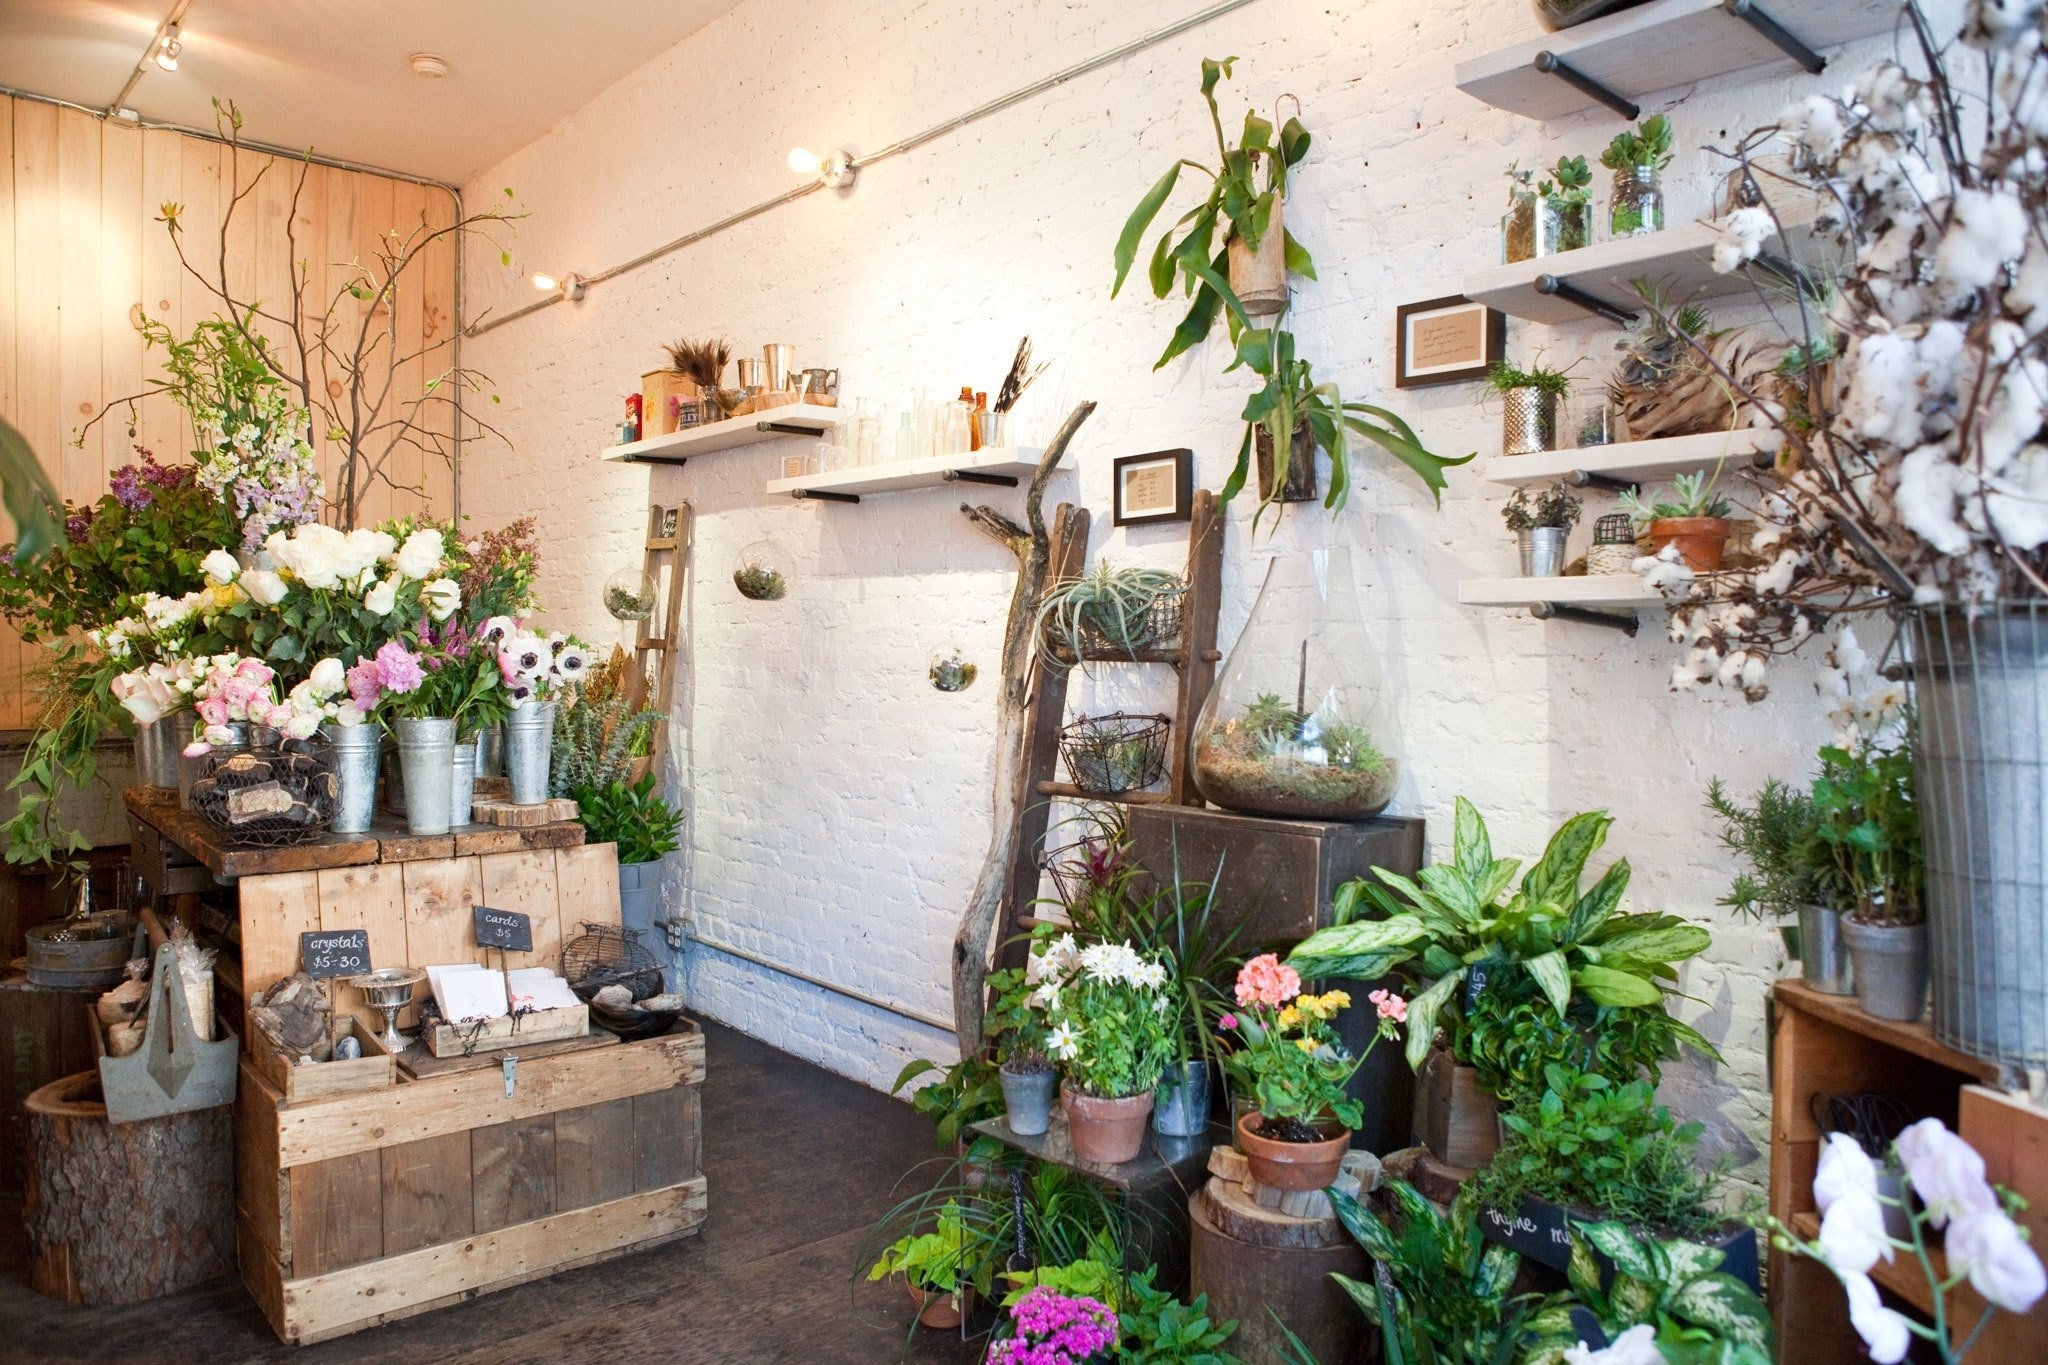 10 Awesome New York City Gift Ideas mothers day in nyc guide including events and gift ideas 2021